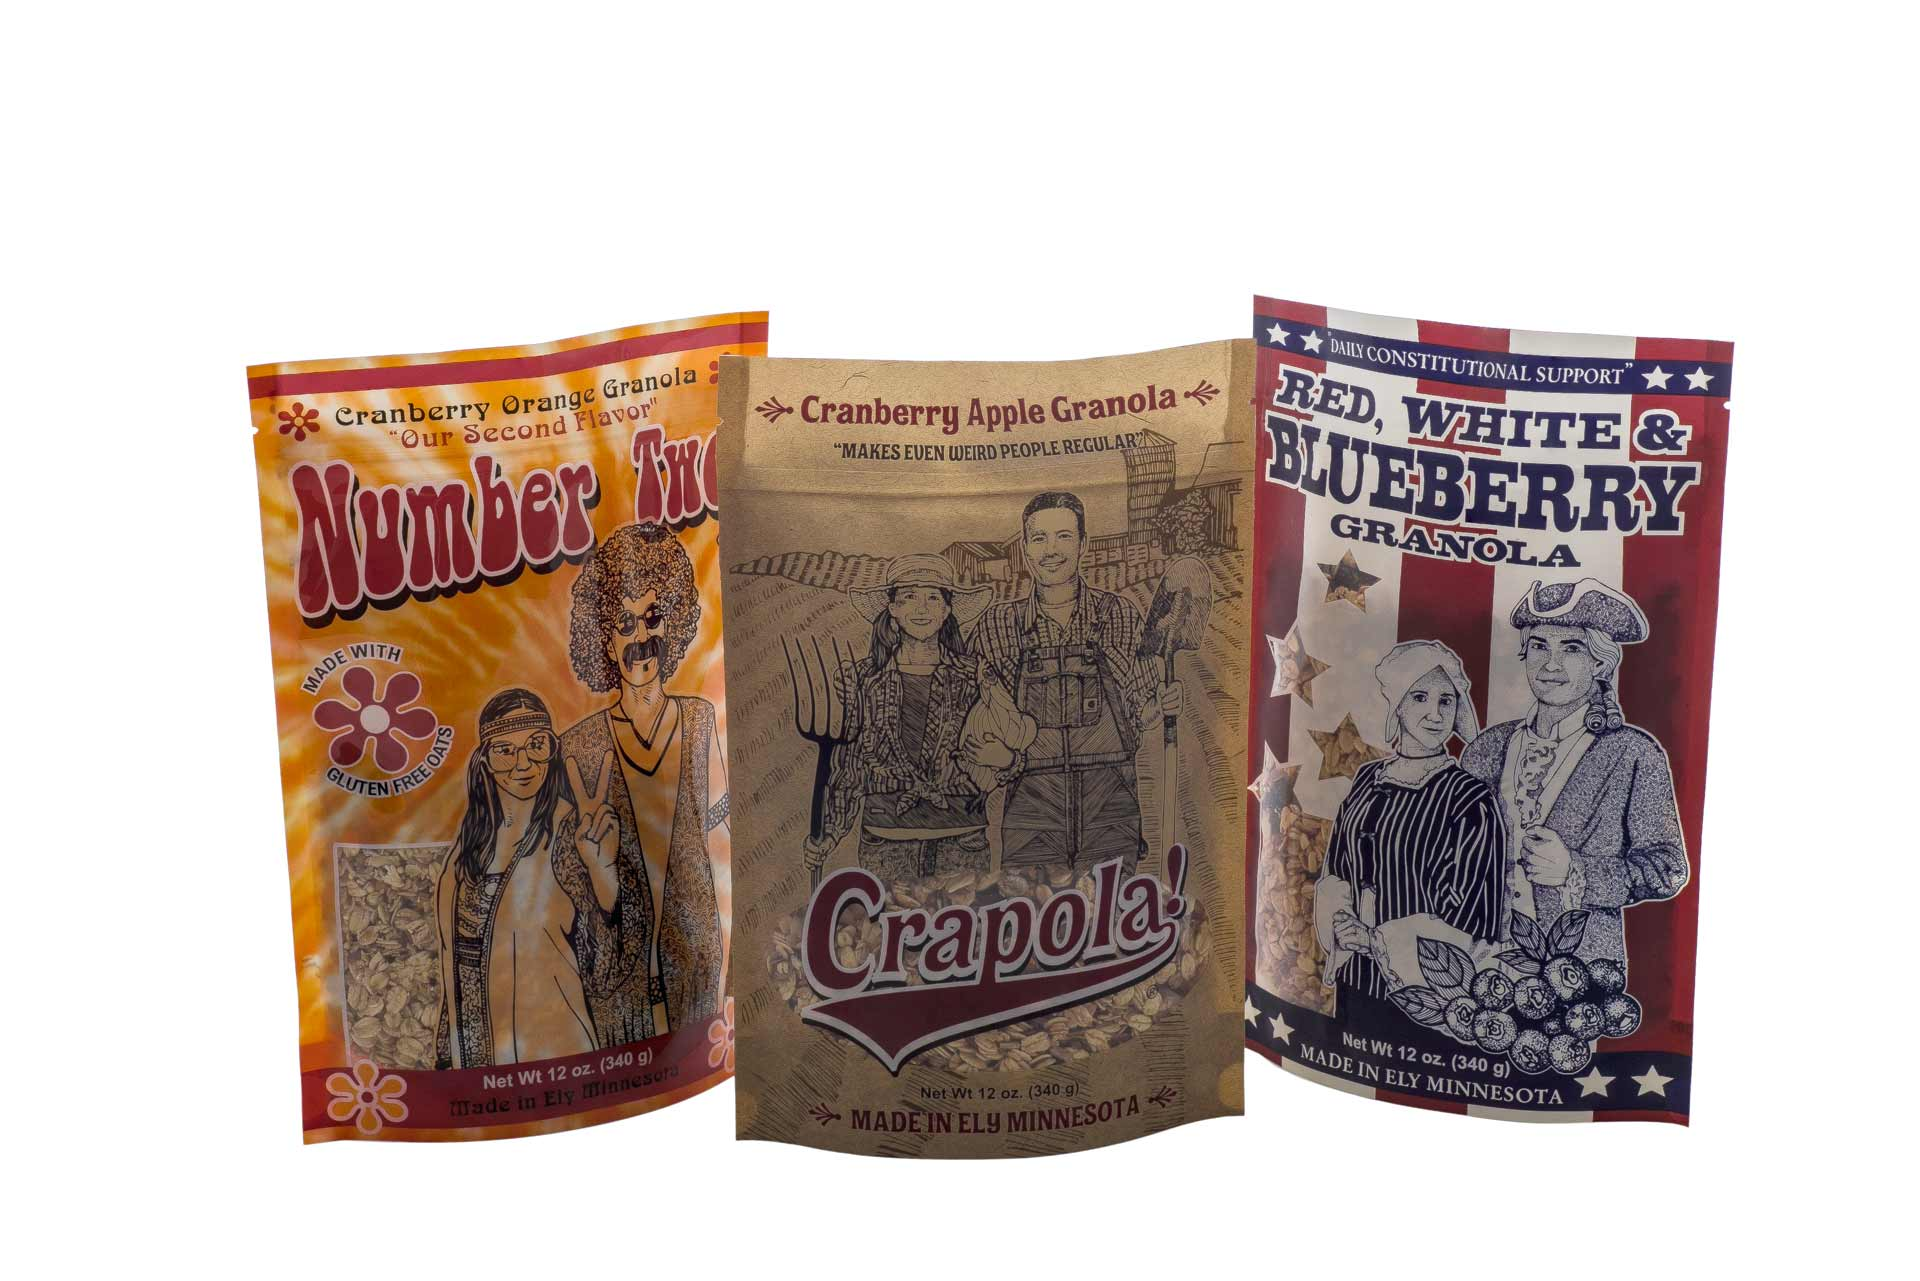 Crapola! Granola – Product Family